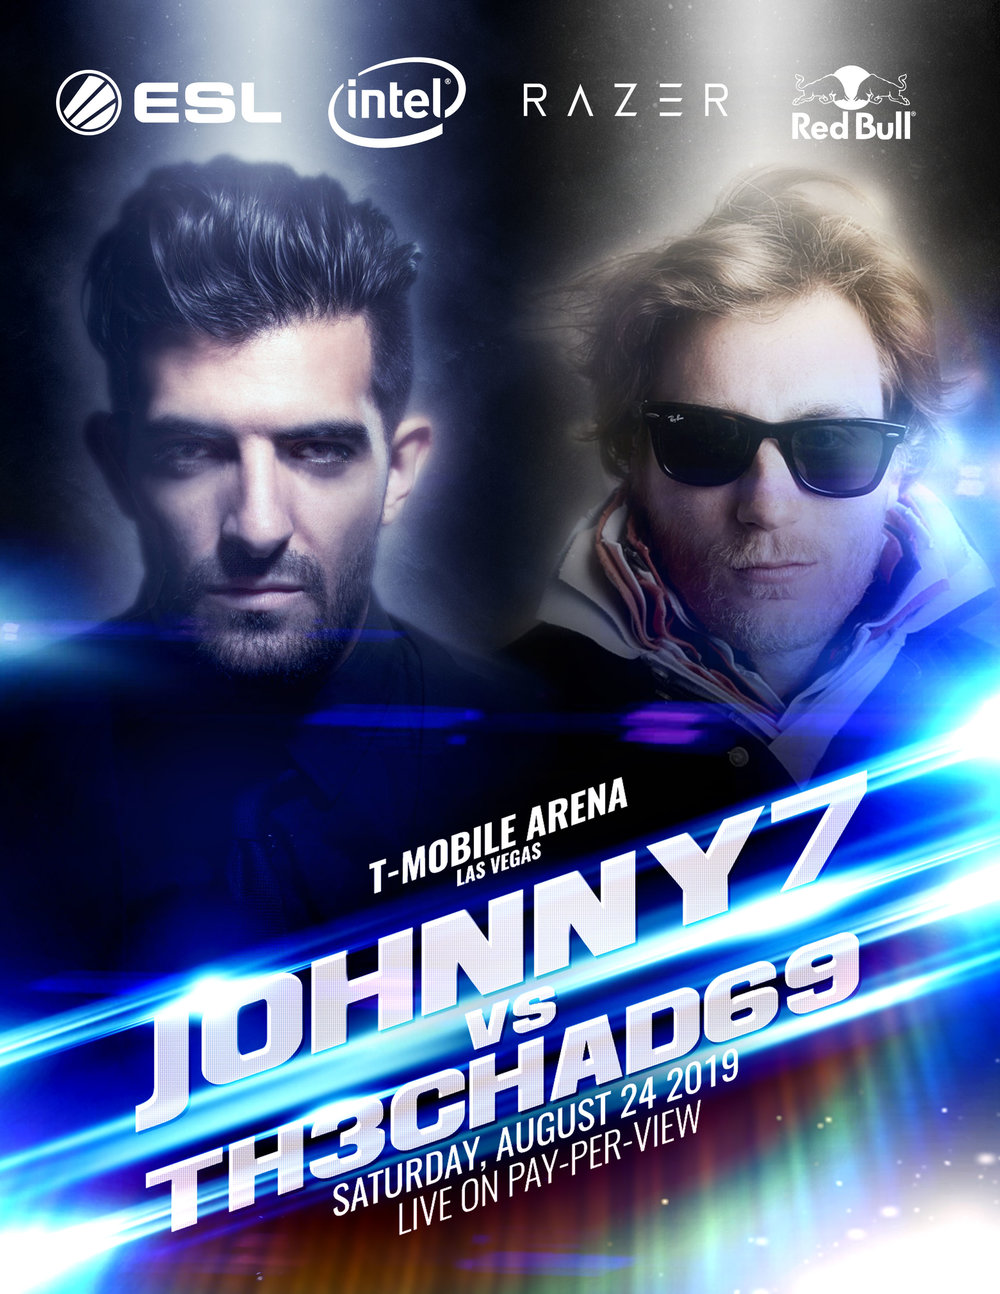 Johnny7-Vs-Th3Chad-Proofv02.jpg